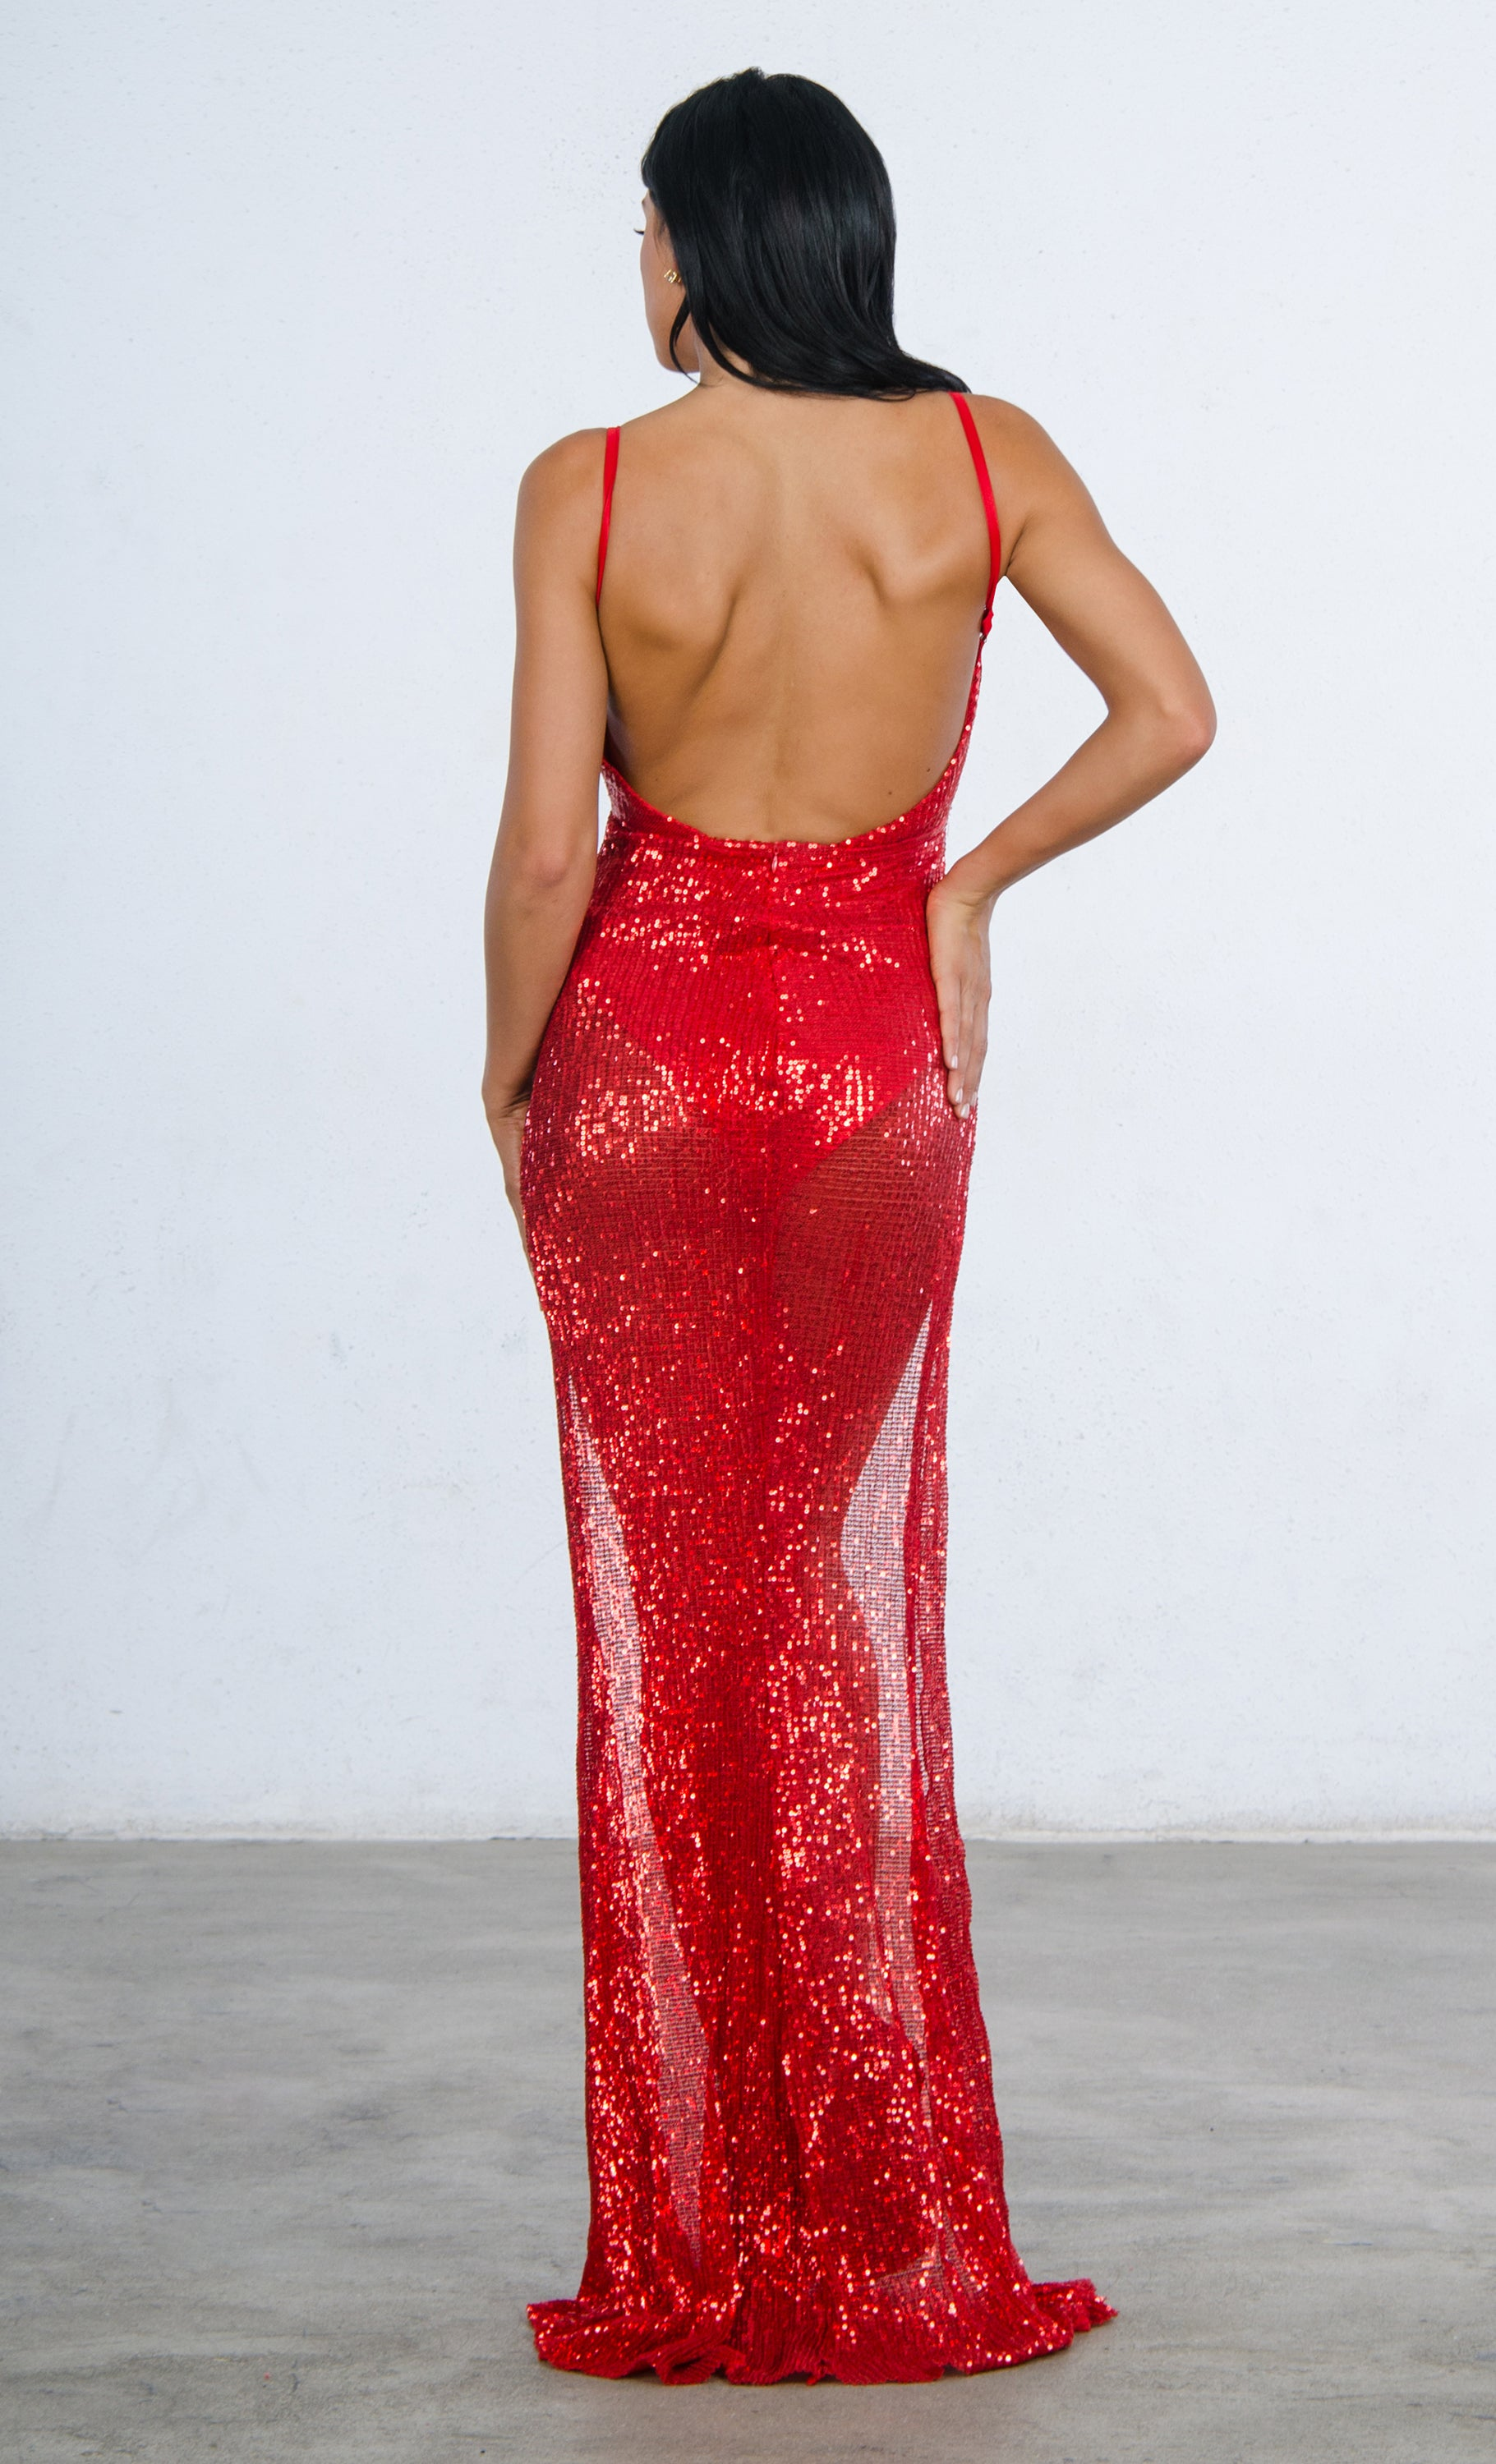 4d3732b30f5 Indie XO Mystery Girl Red Semi Sheer Sequin Spaghetti Strap Sleeveless  Plunge V Neck Backless Double